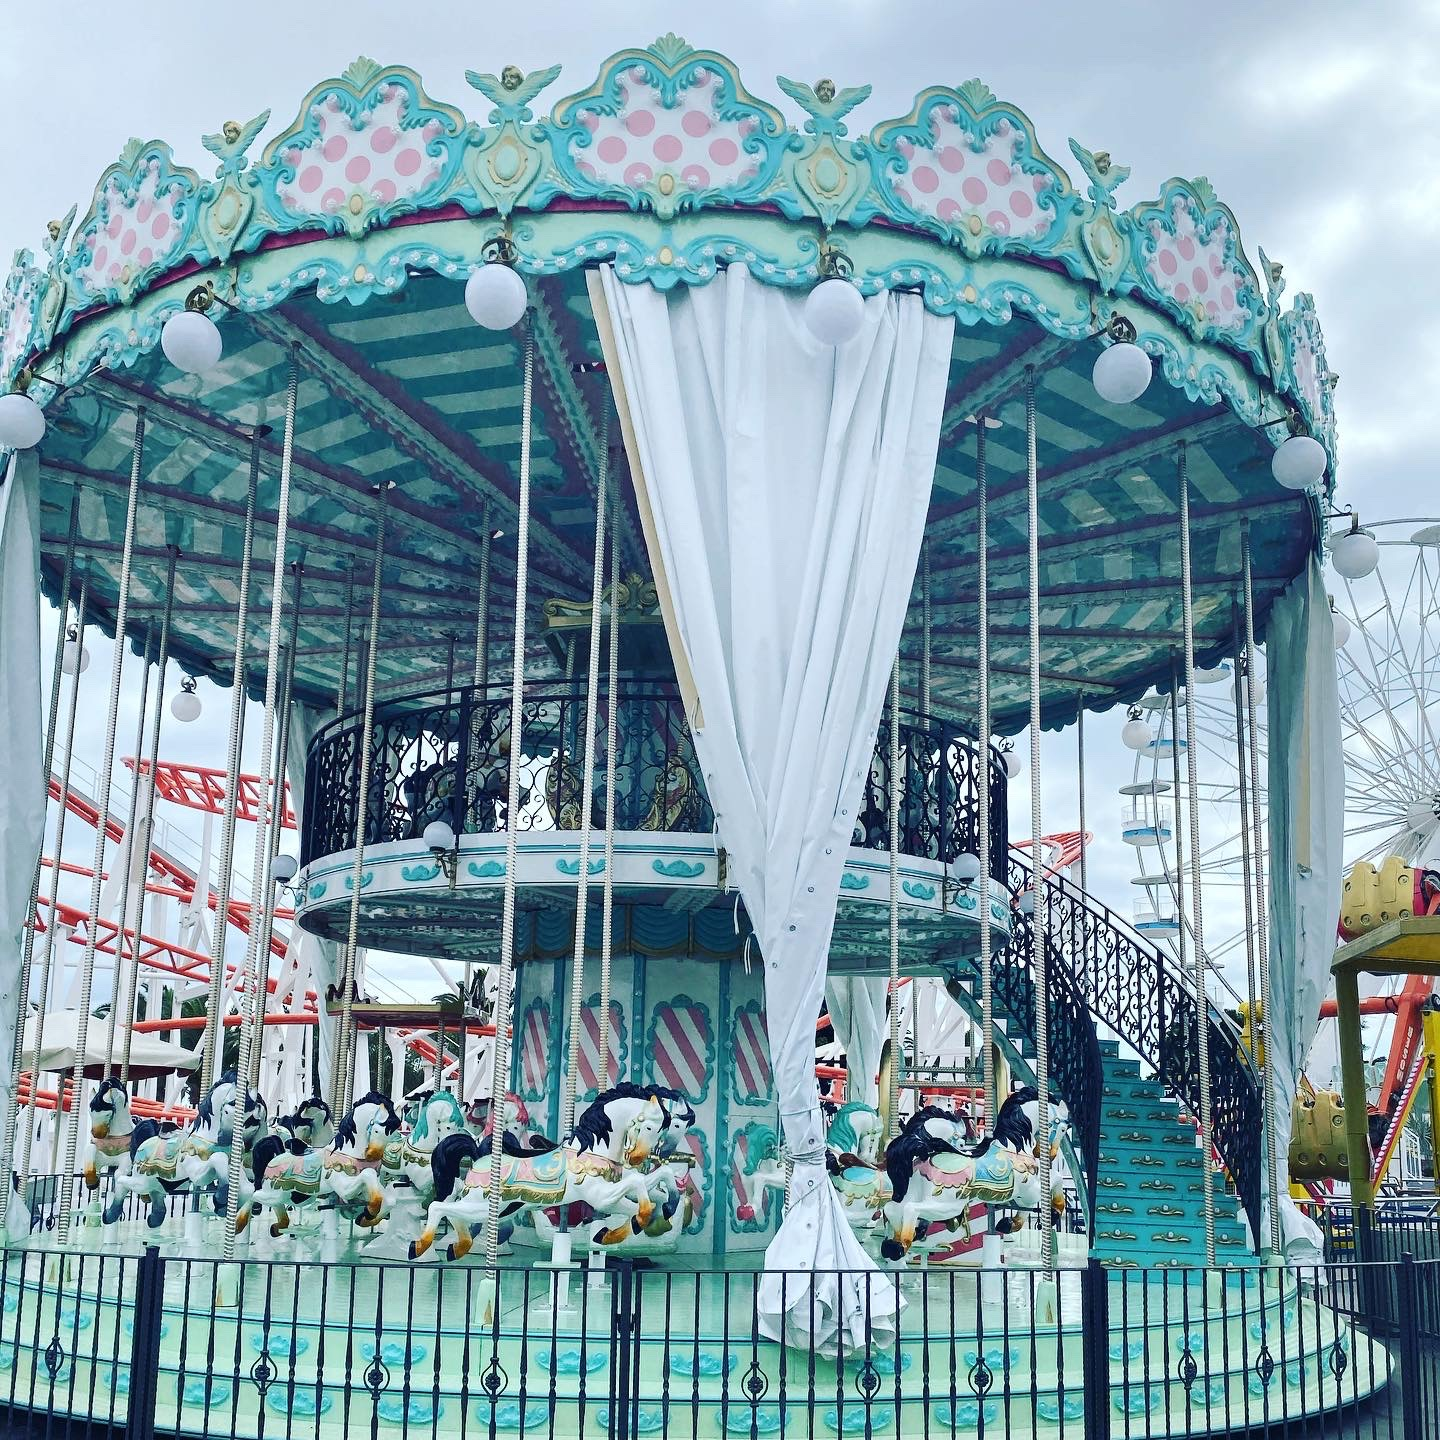 Theme Park Carousel by 13 Weeks Travel